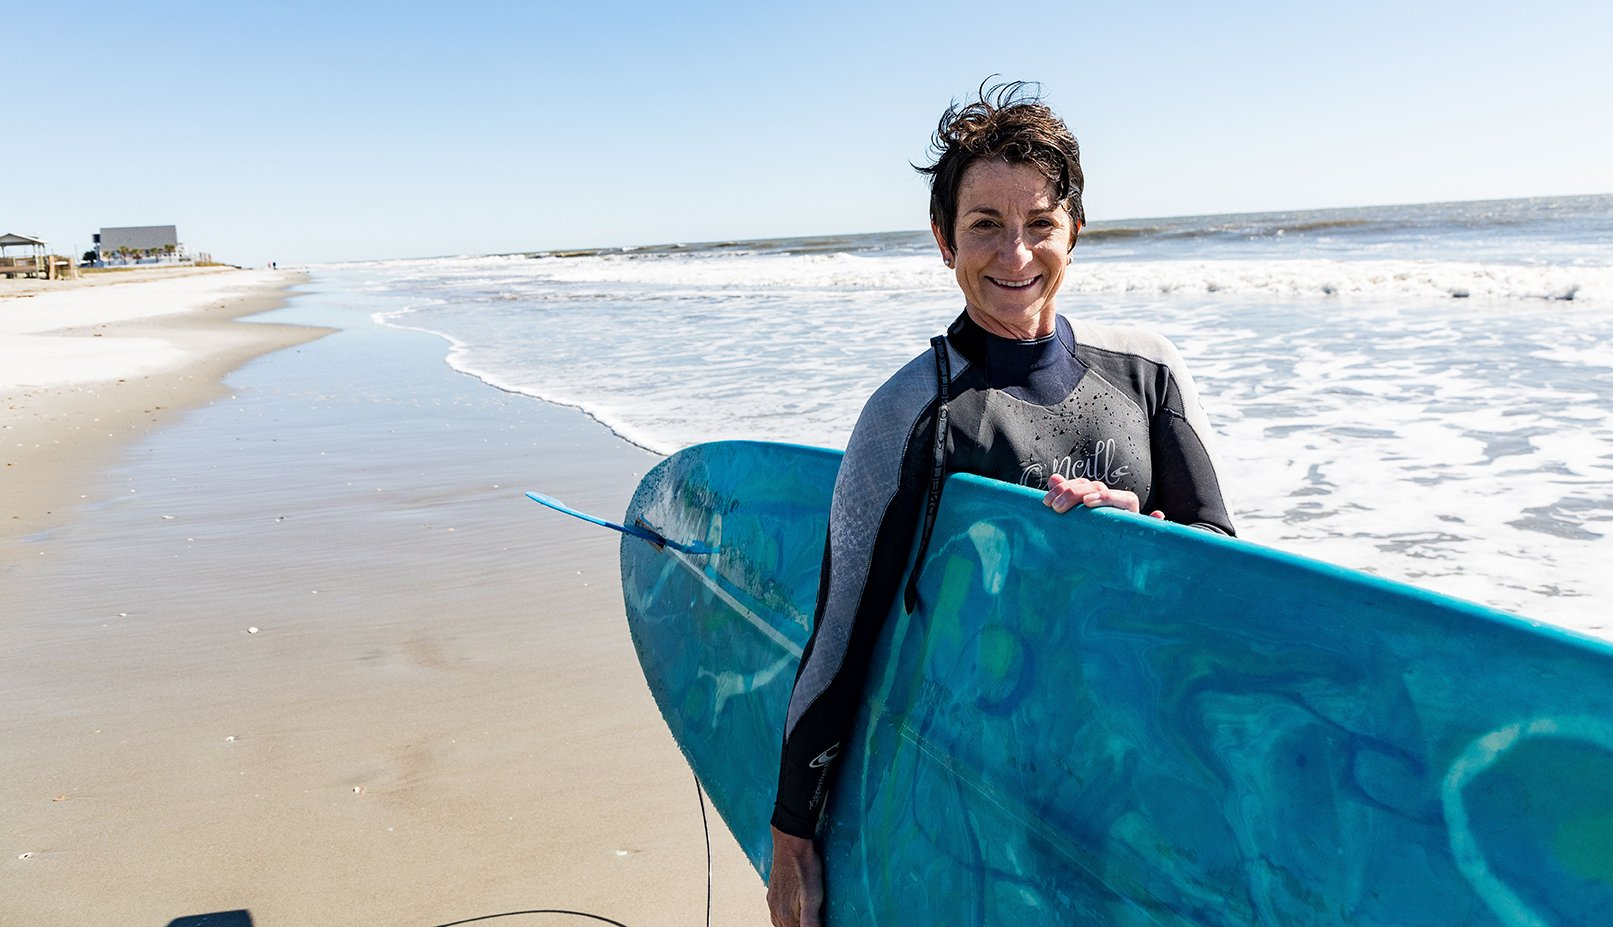 Surfer Christine Scaplen at The Washout, Folly Beach, SC